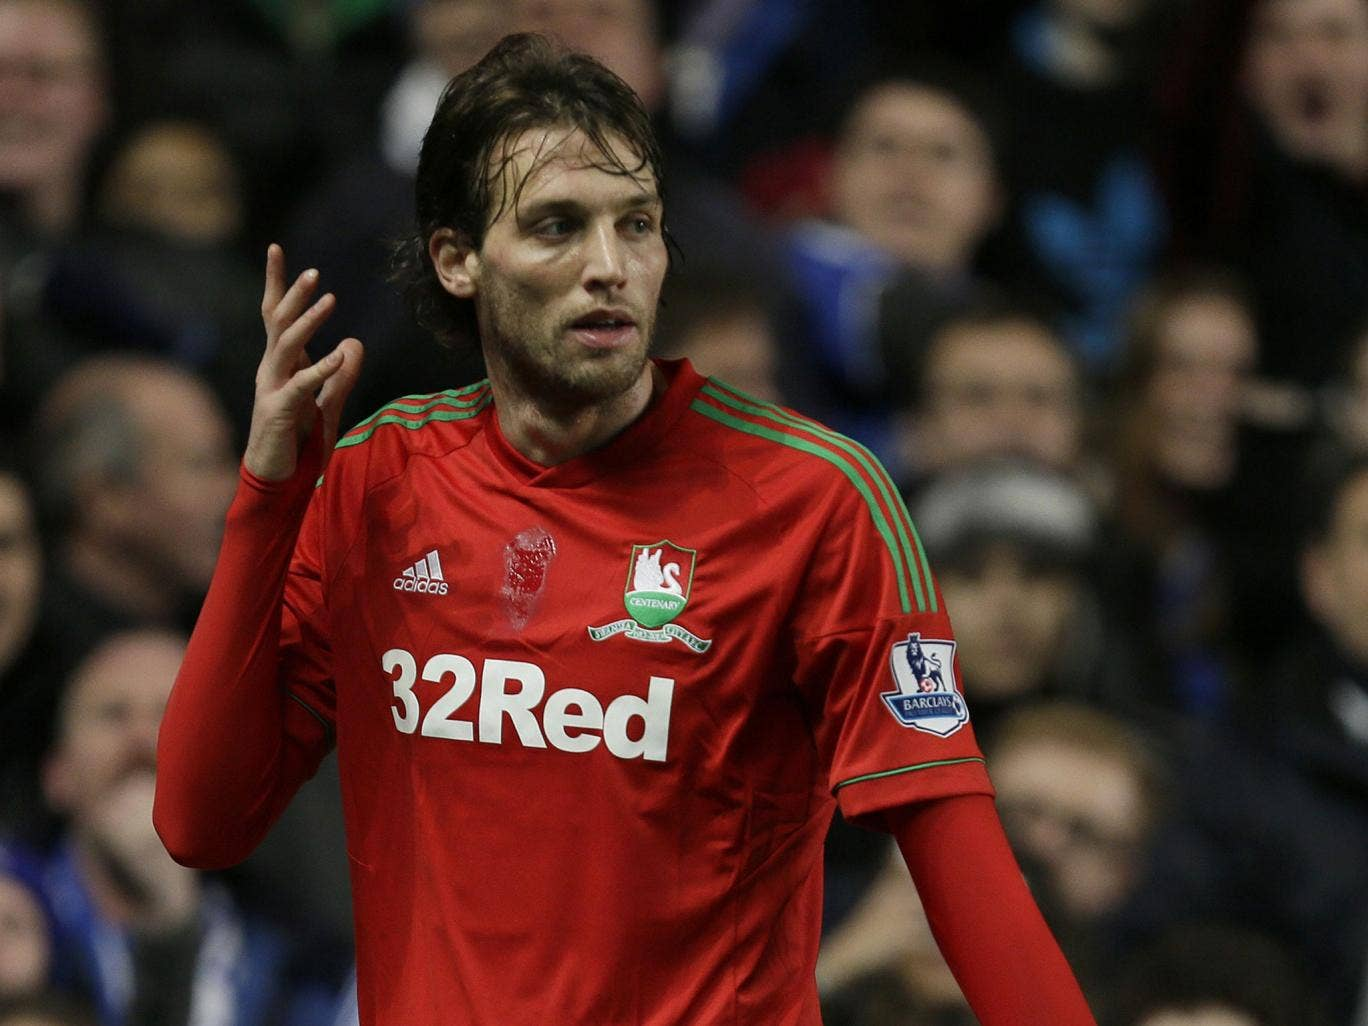 Michu: Has scored 16 goals in 25 games for Swansea this season